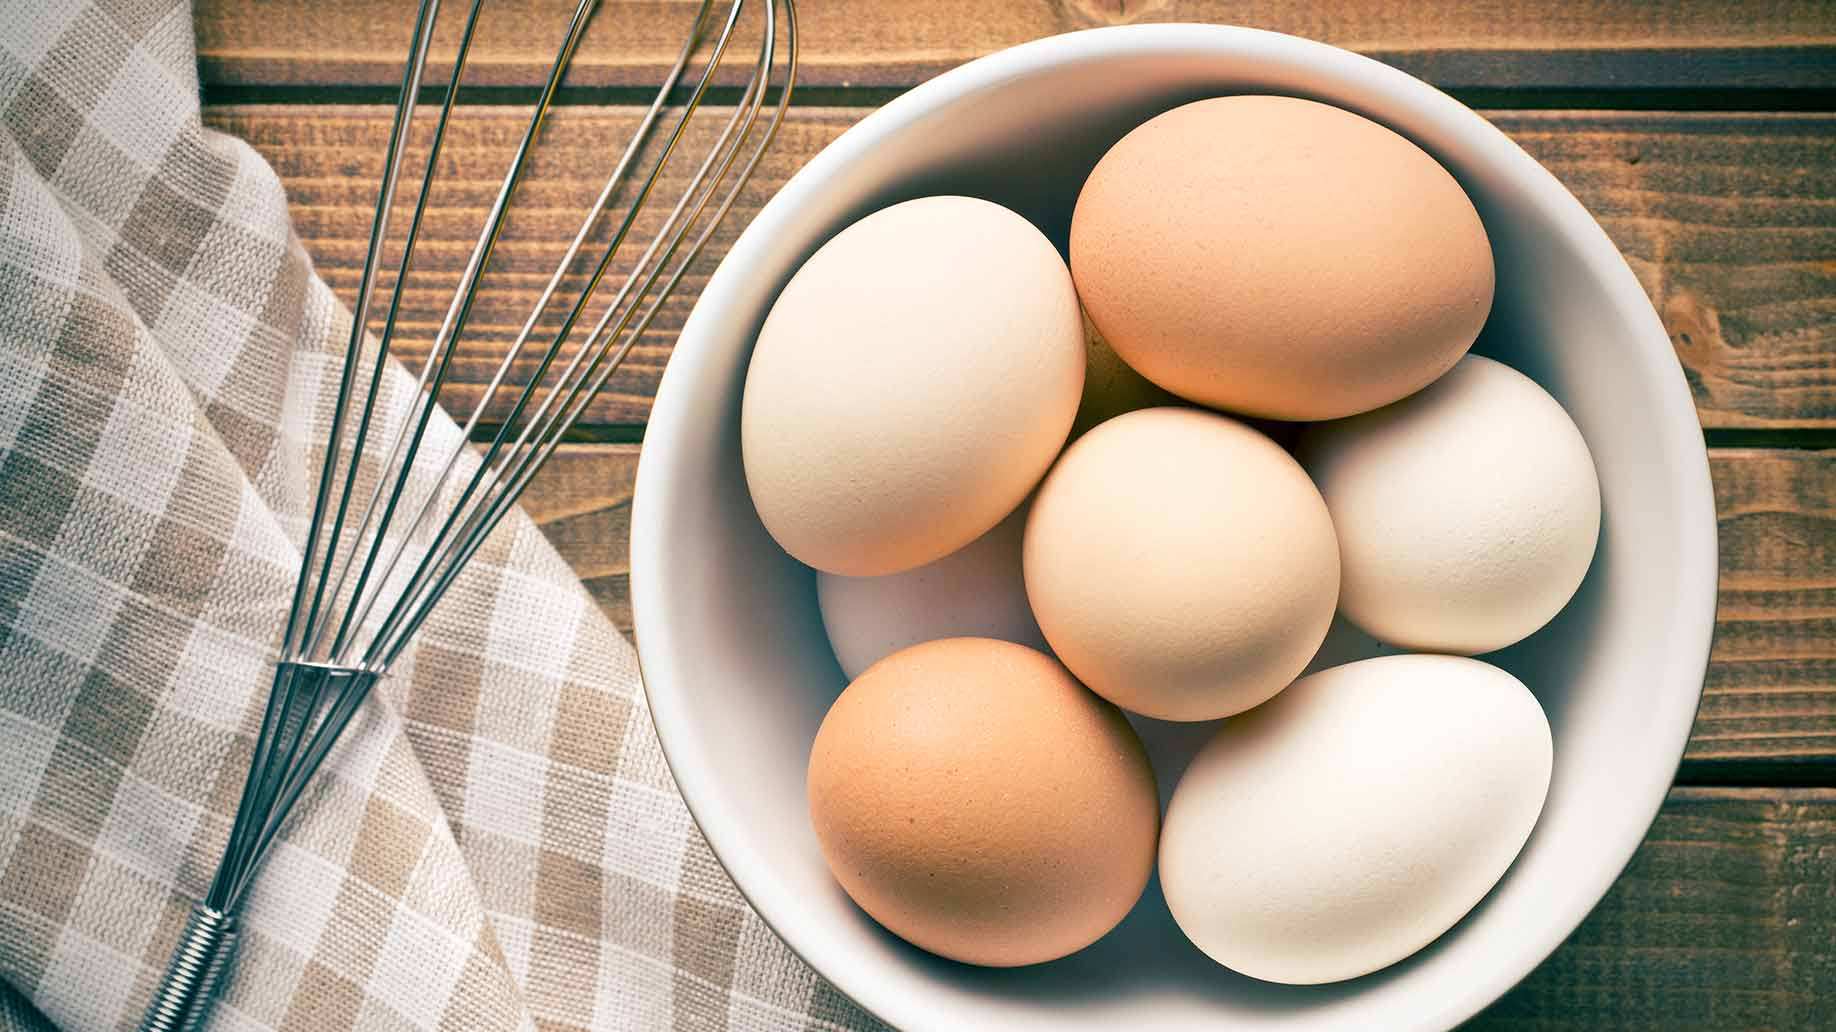 eat eggs breakfast weight loss natural remedies